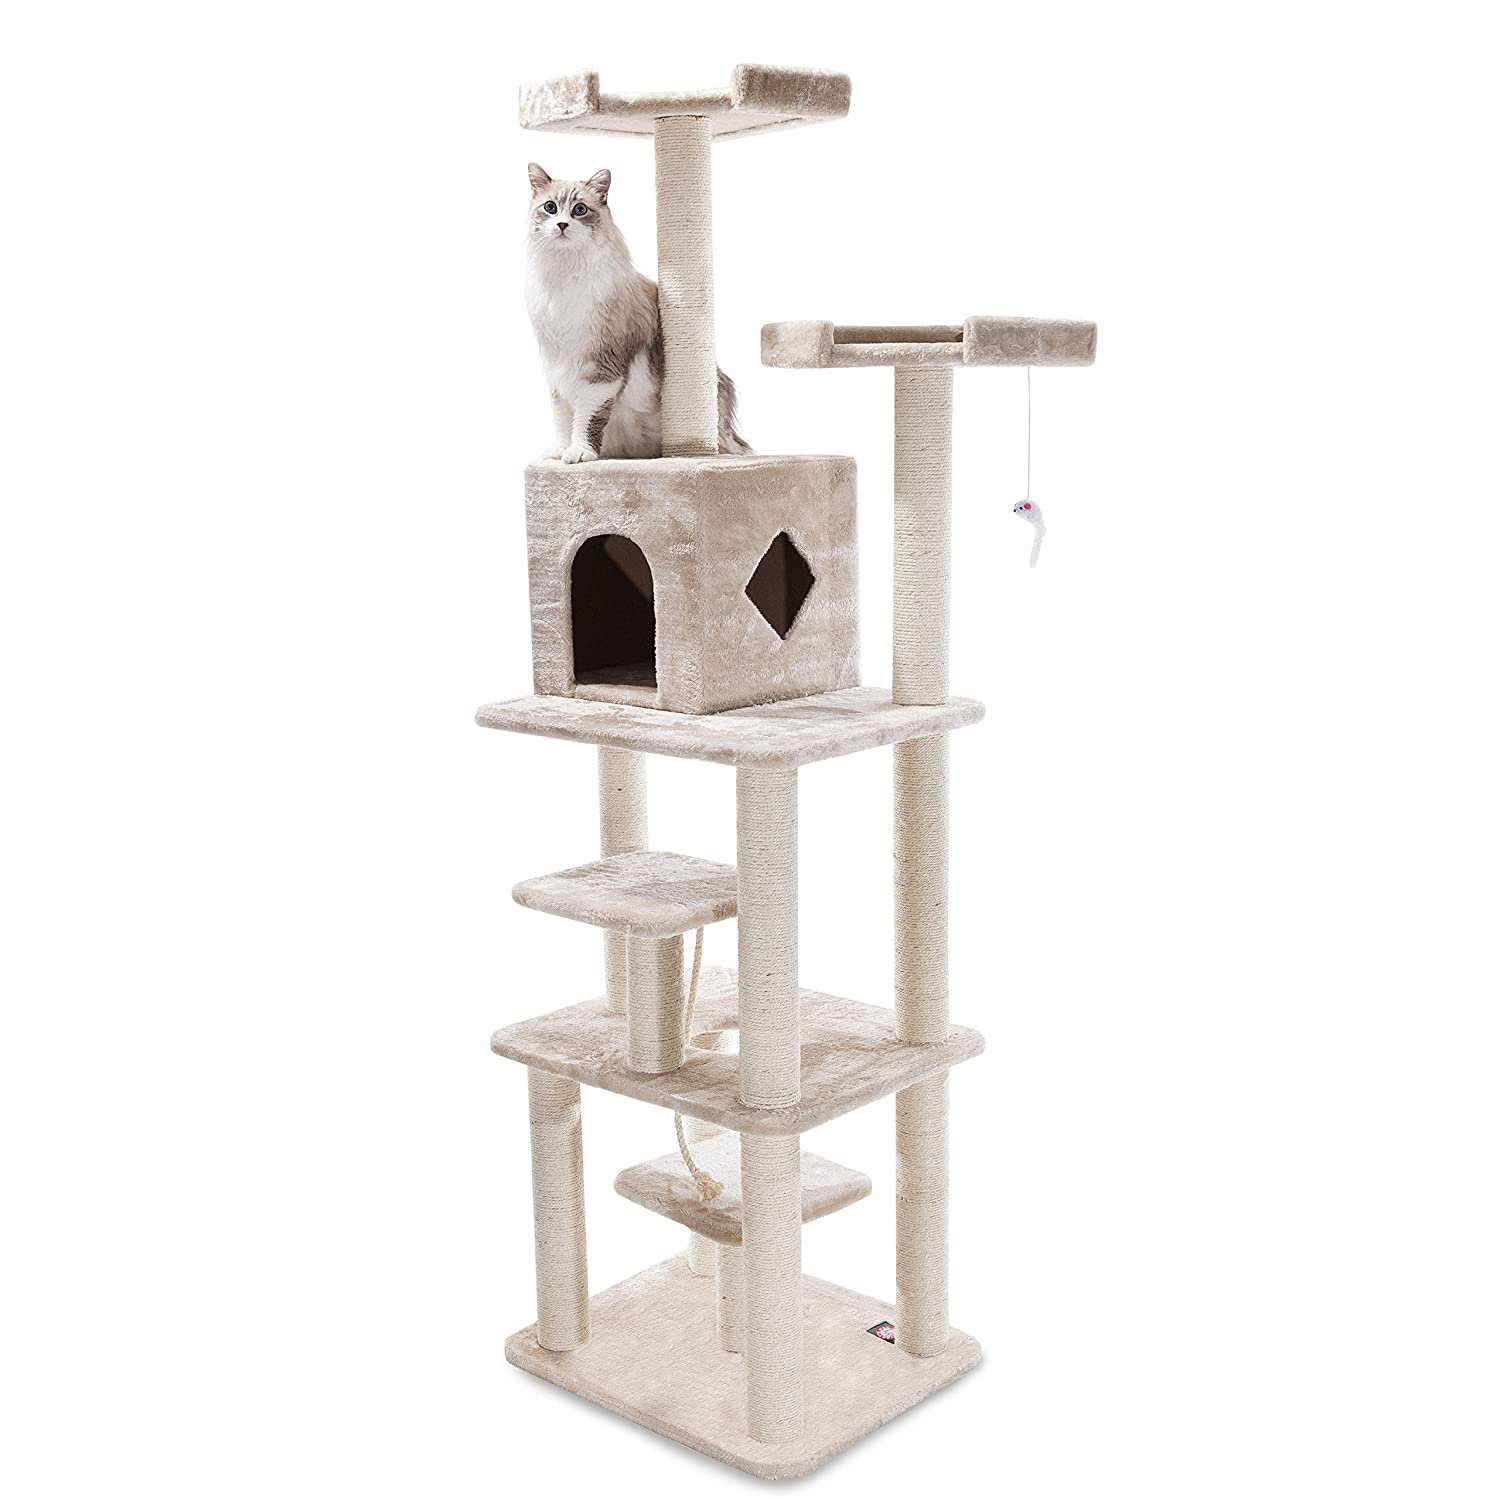 Majestic Pet Products 78 inch Beige Casita Cat Furniture Condo House Scratcher Multi Level Pet Activity Tree